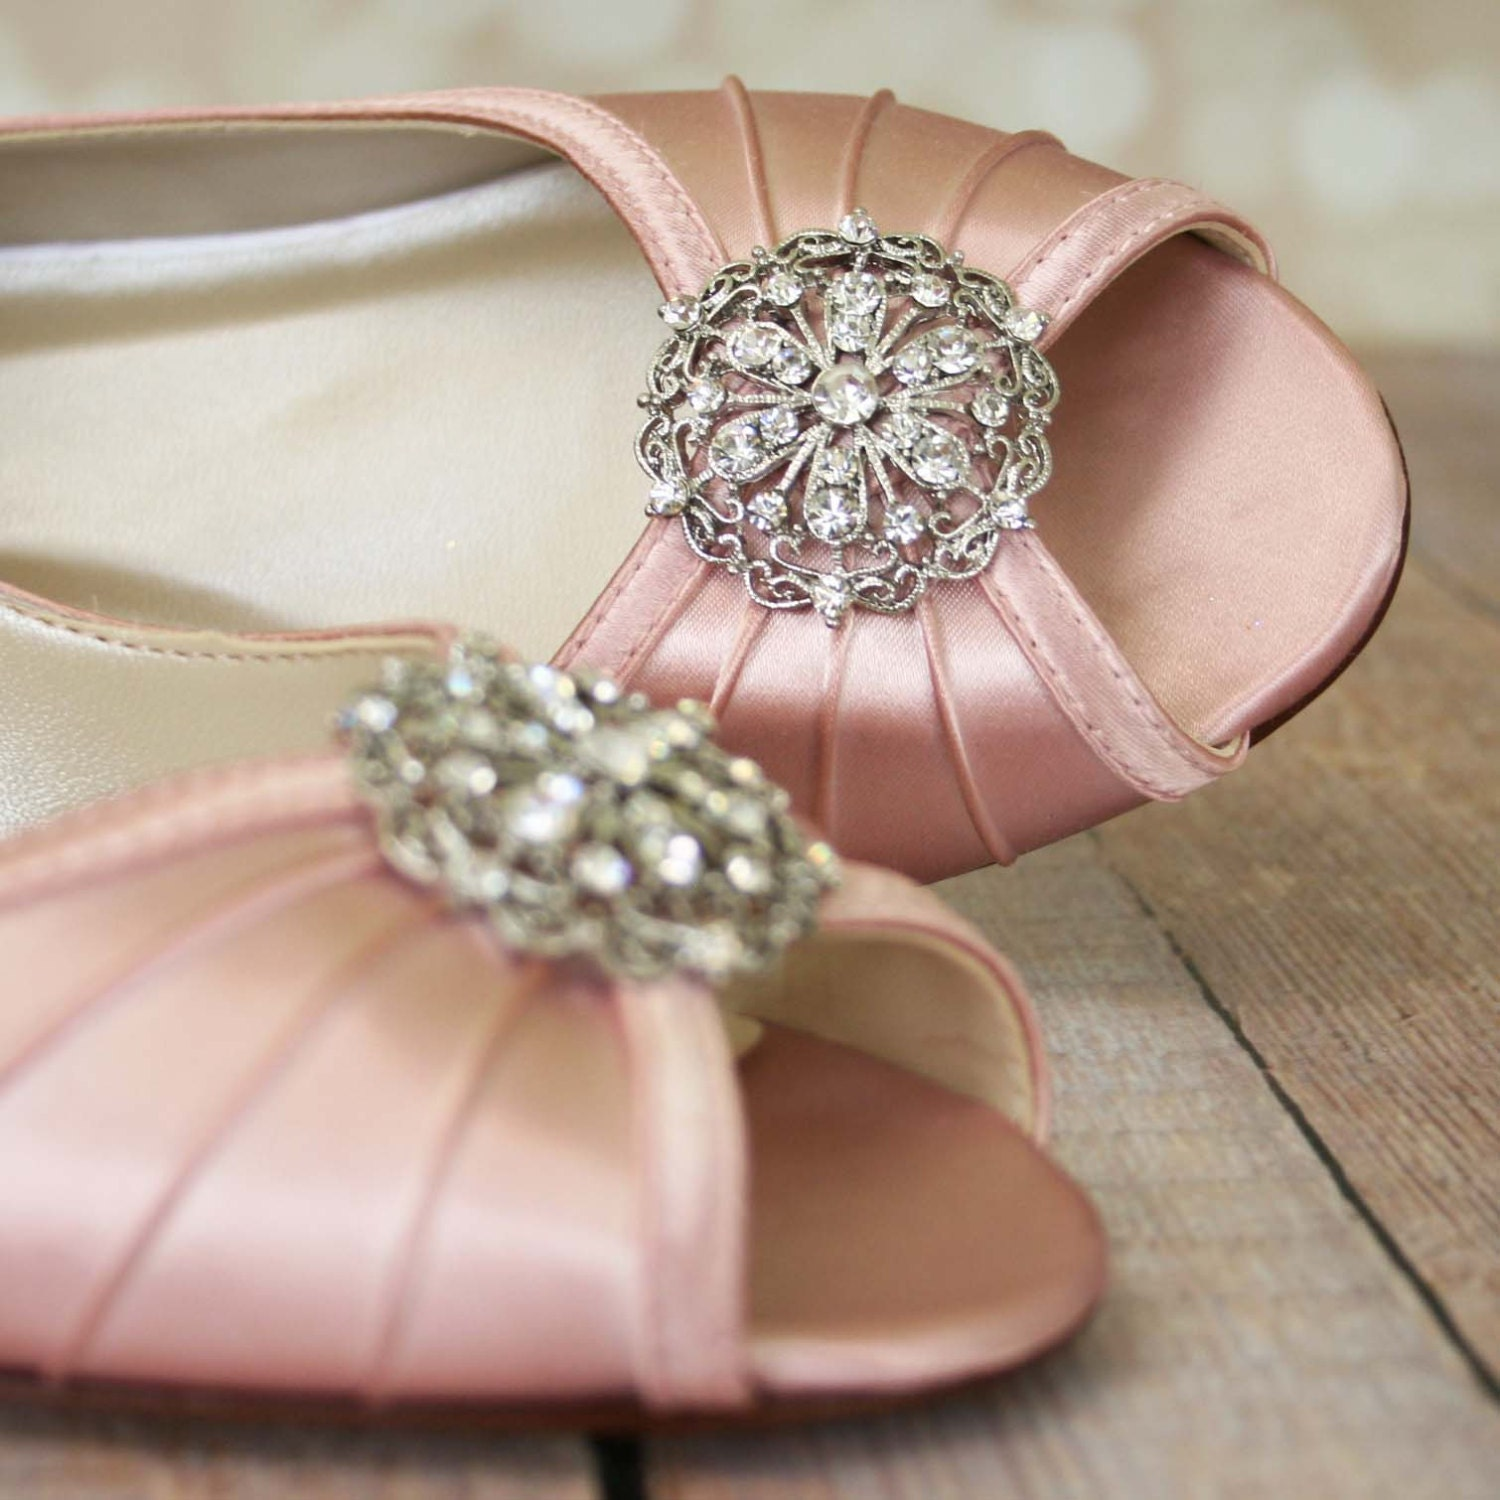 wedding wedges wedding shoes wedges Pink Wedding Shoes Blush Pink Shoes Vintage Wedding Shoes Wedding Shoe Wedge Wedding Shoes Budget Low Heel Wedding Shoe Custom Wedding